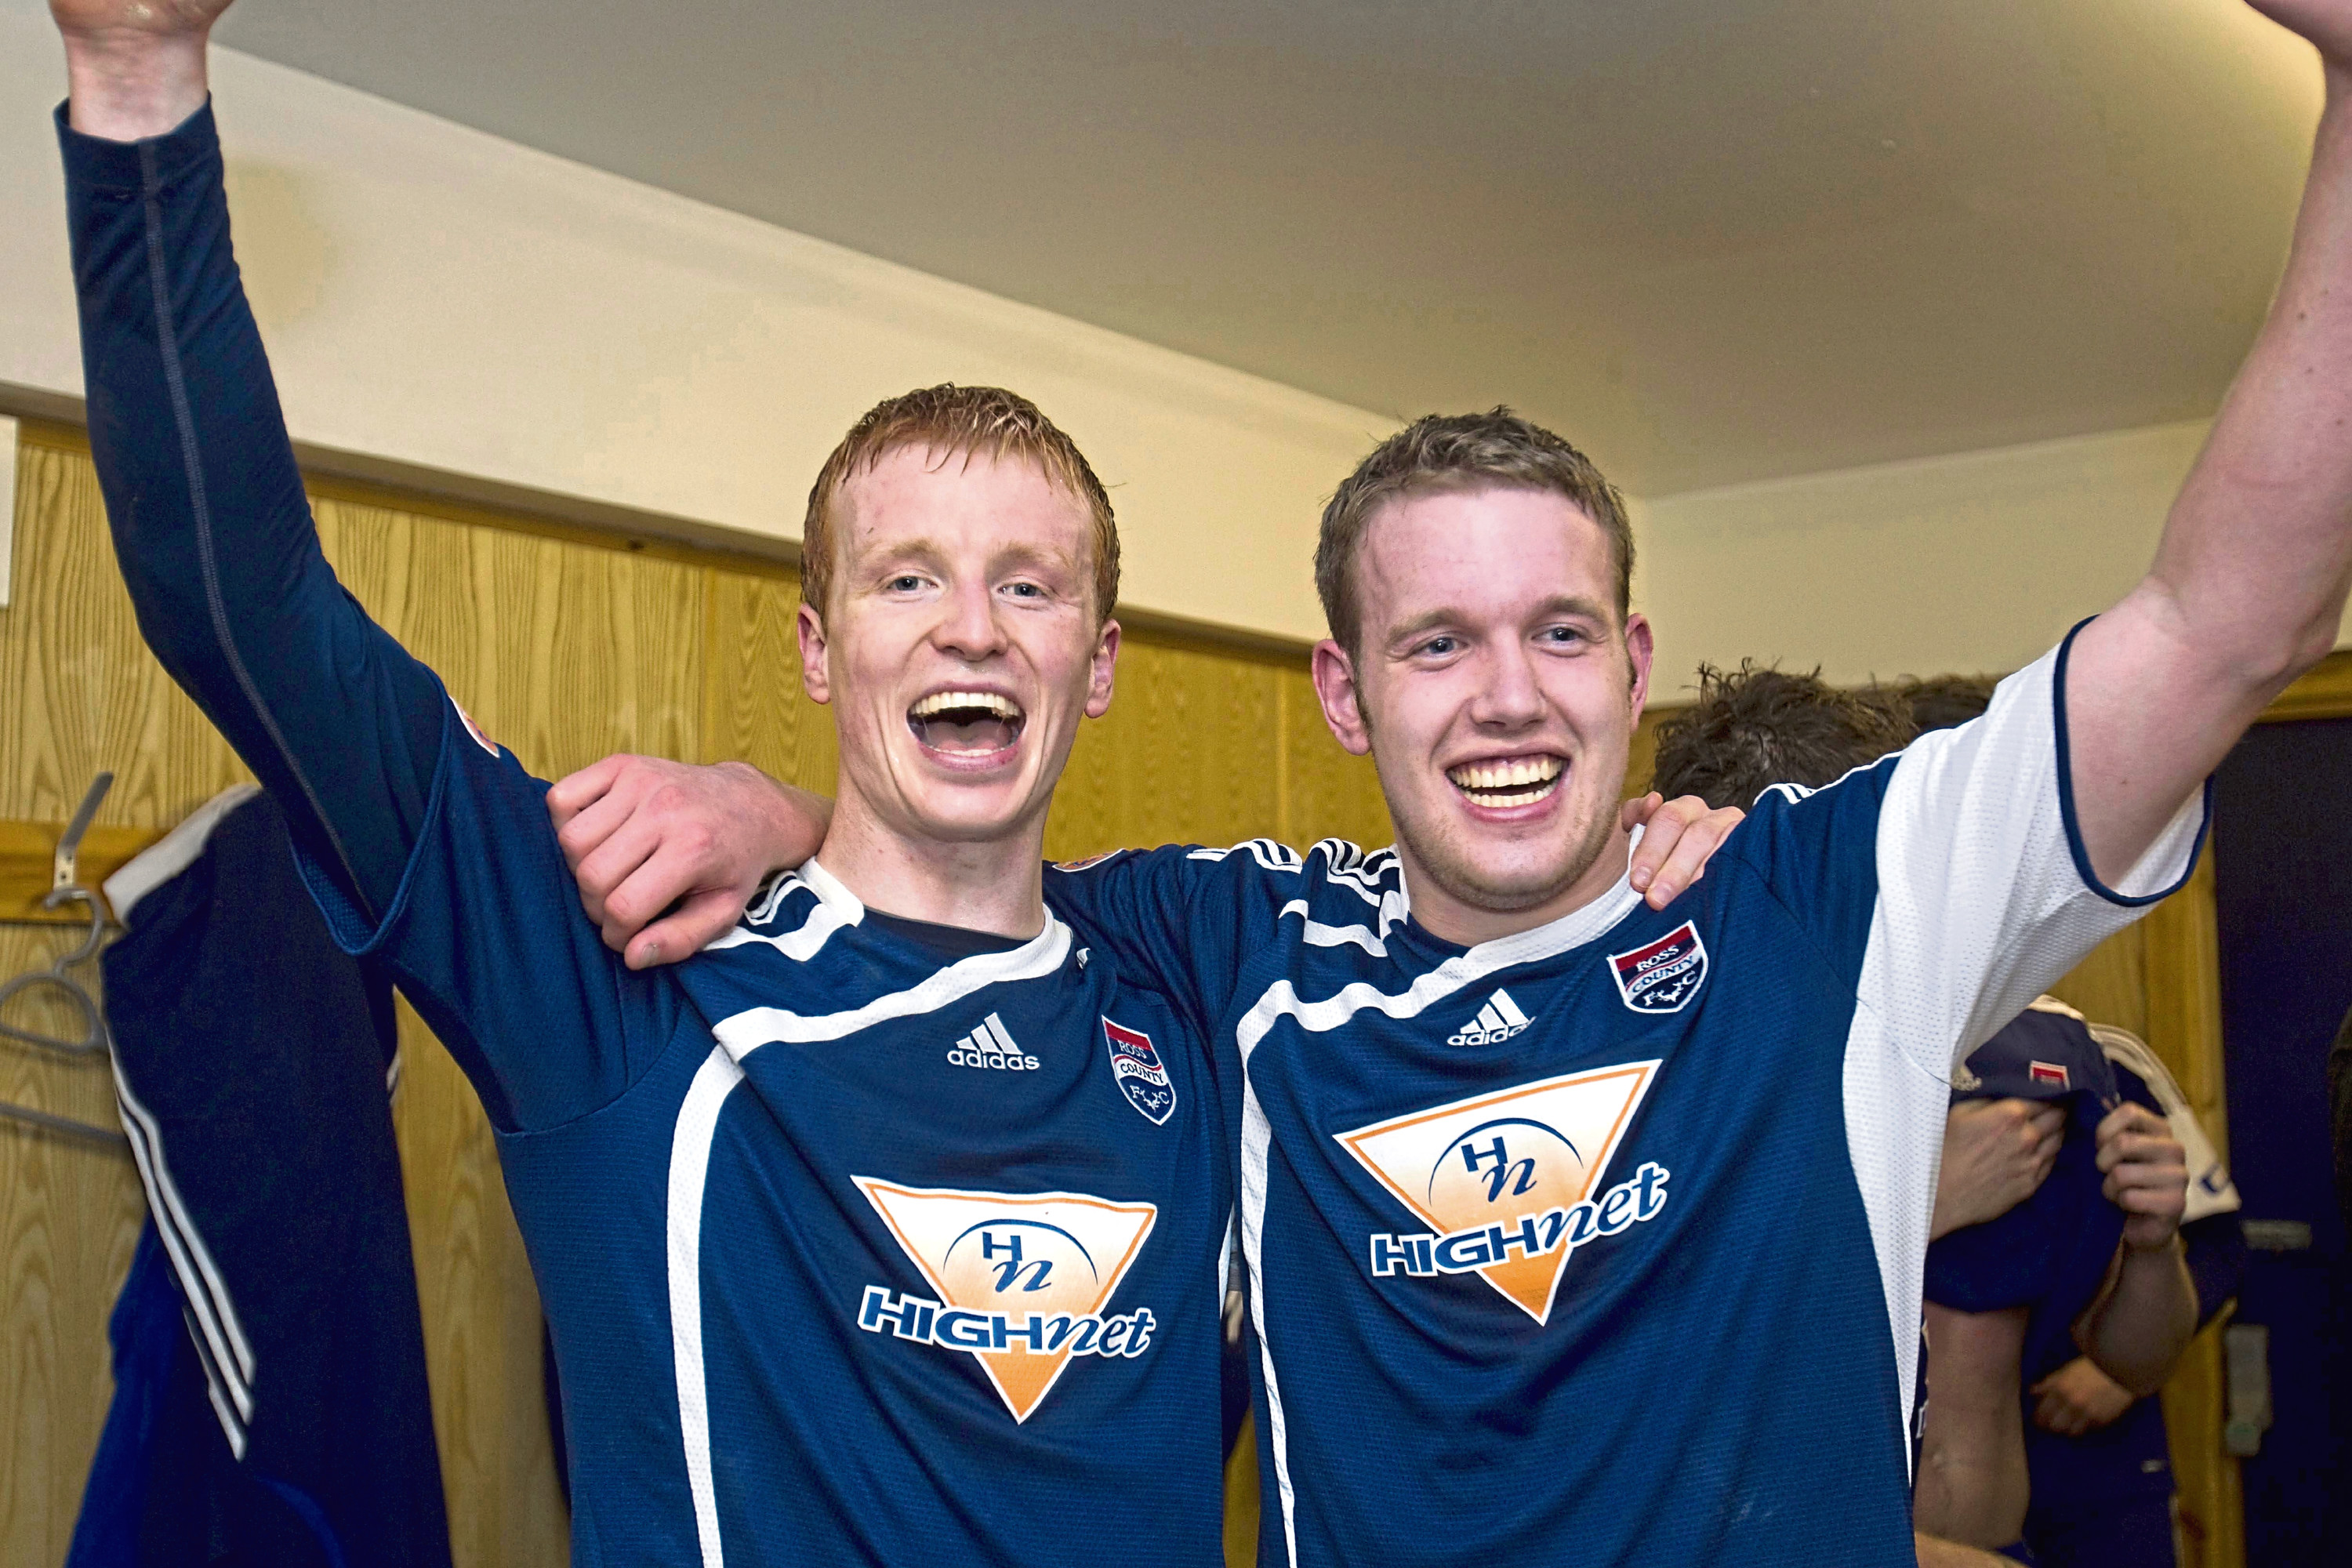 Ross County's Scott Boyd and Garry Wood celebrate in the dressing room following victory over Hibernian in the Scottish Cup Sixth Round Replay in 2010